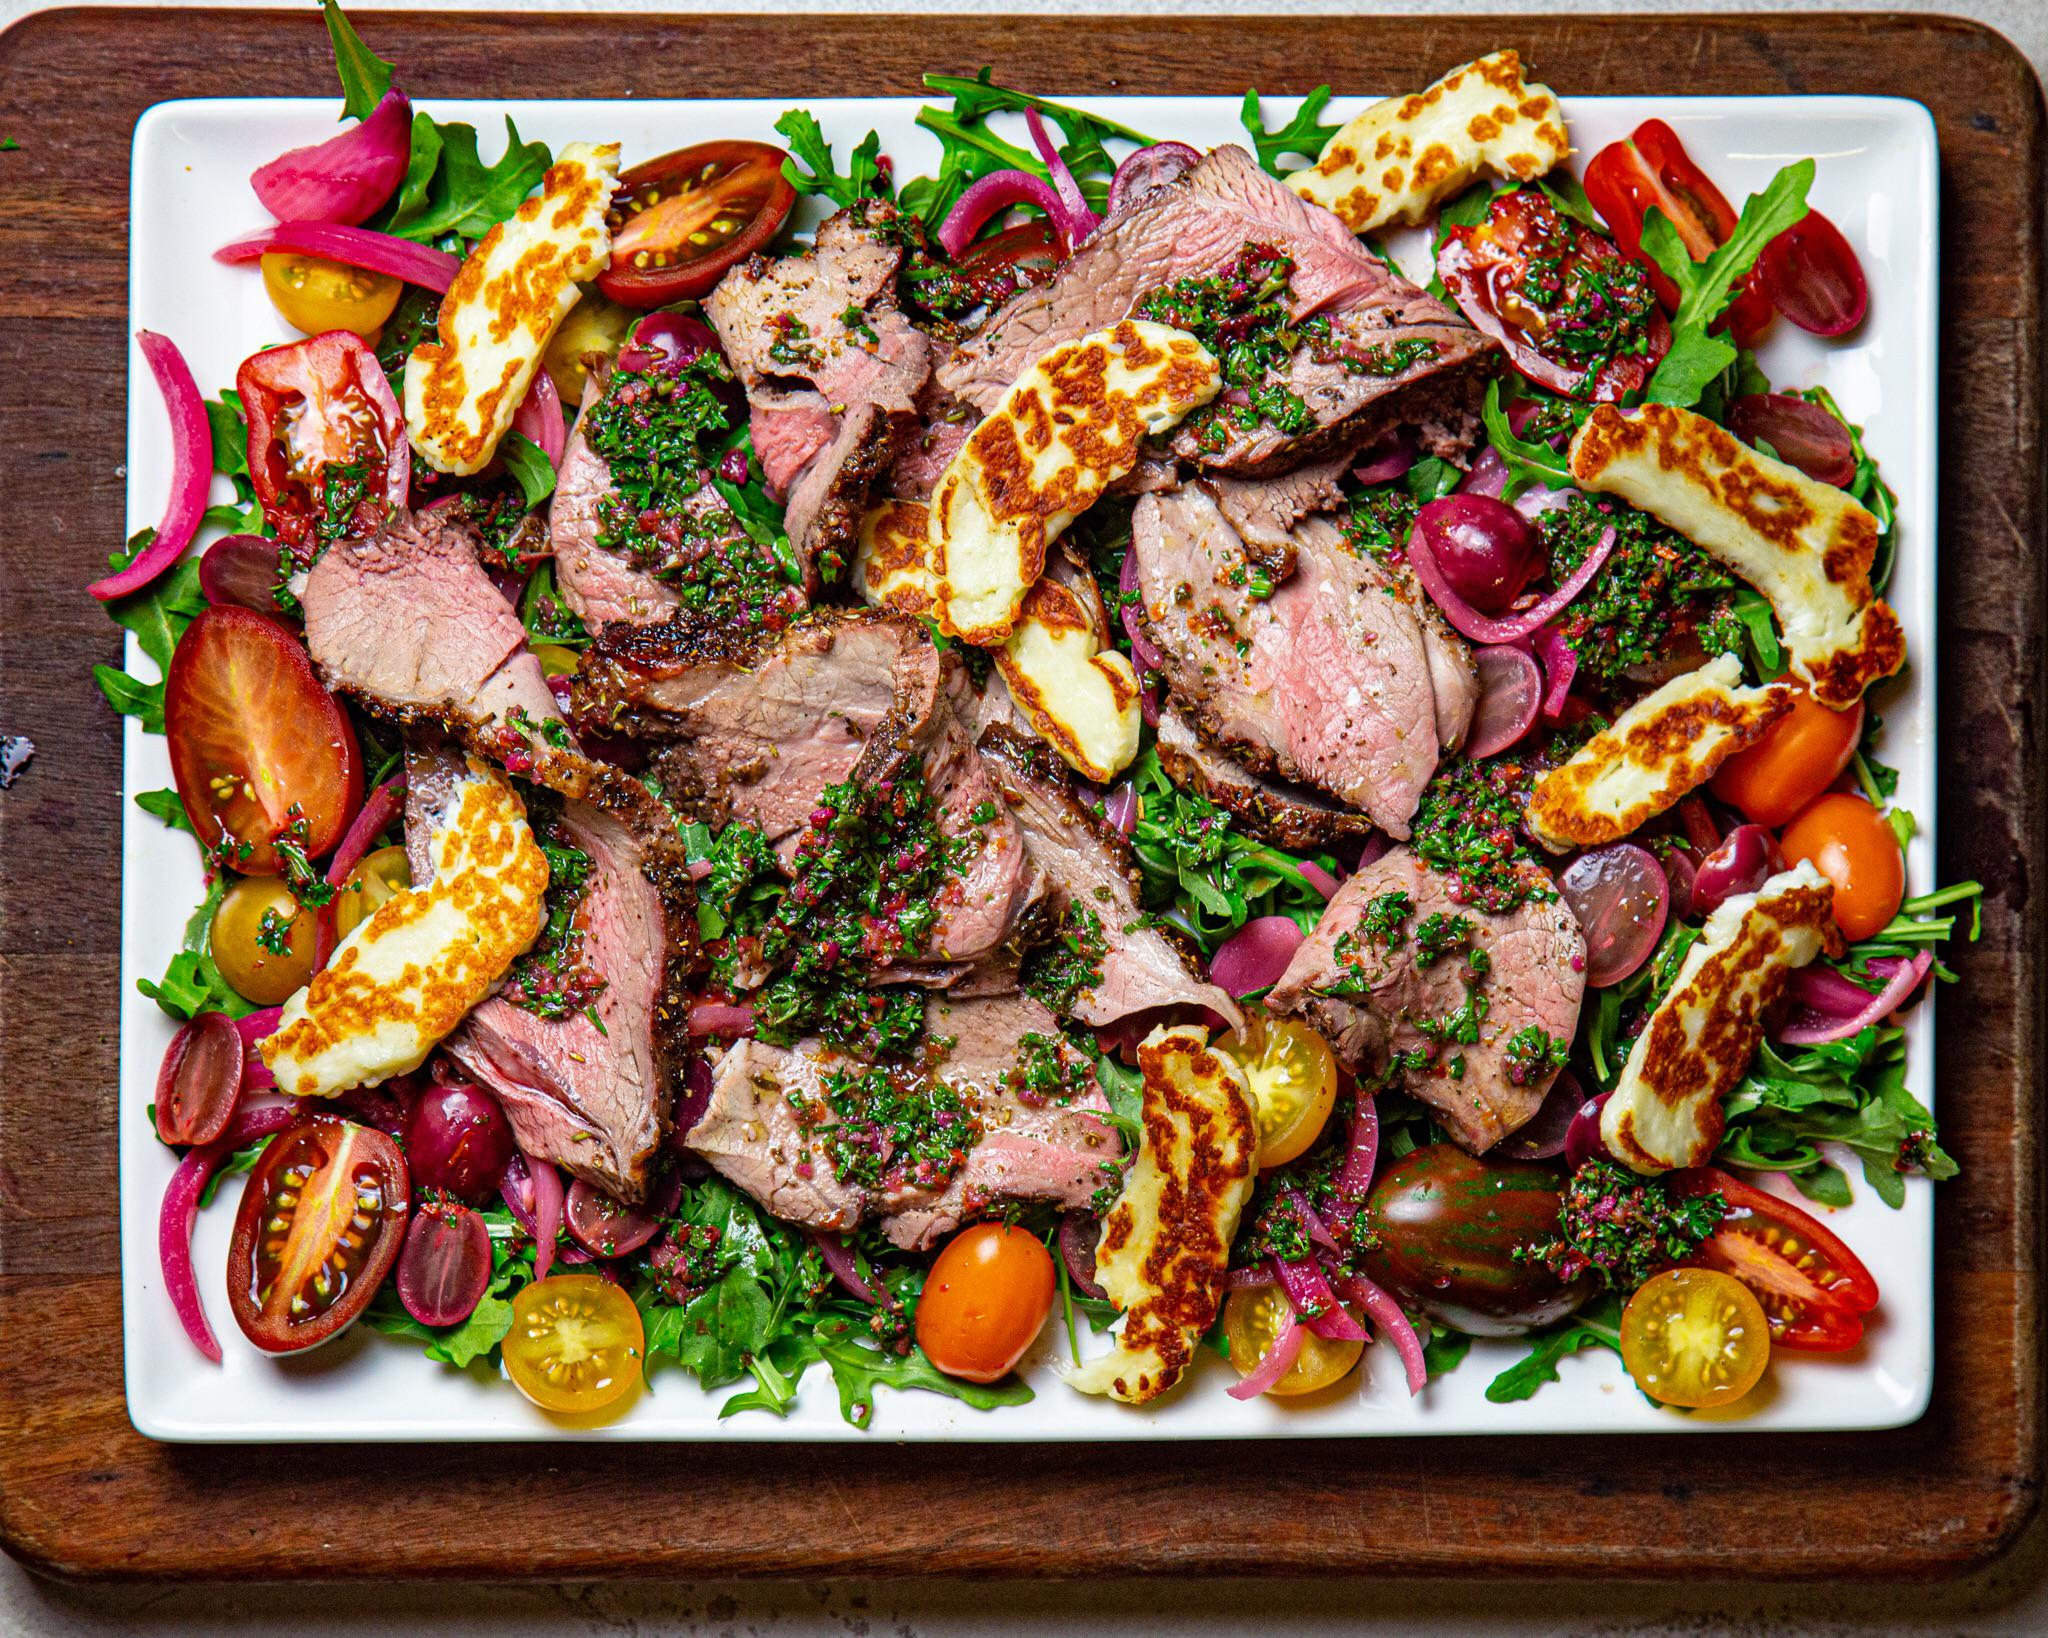 Lamb salad with pickled grapes and onions, halloumi and blood orange chimmichurri